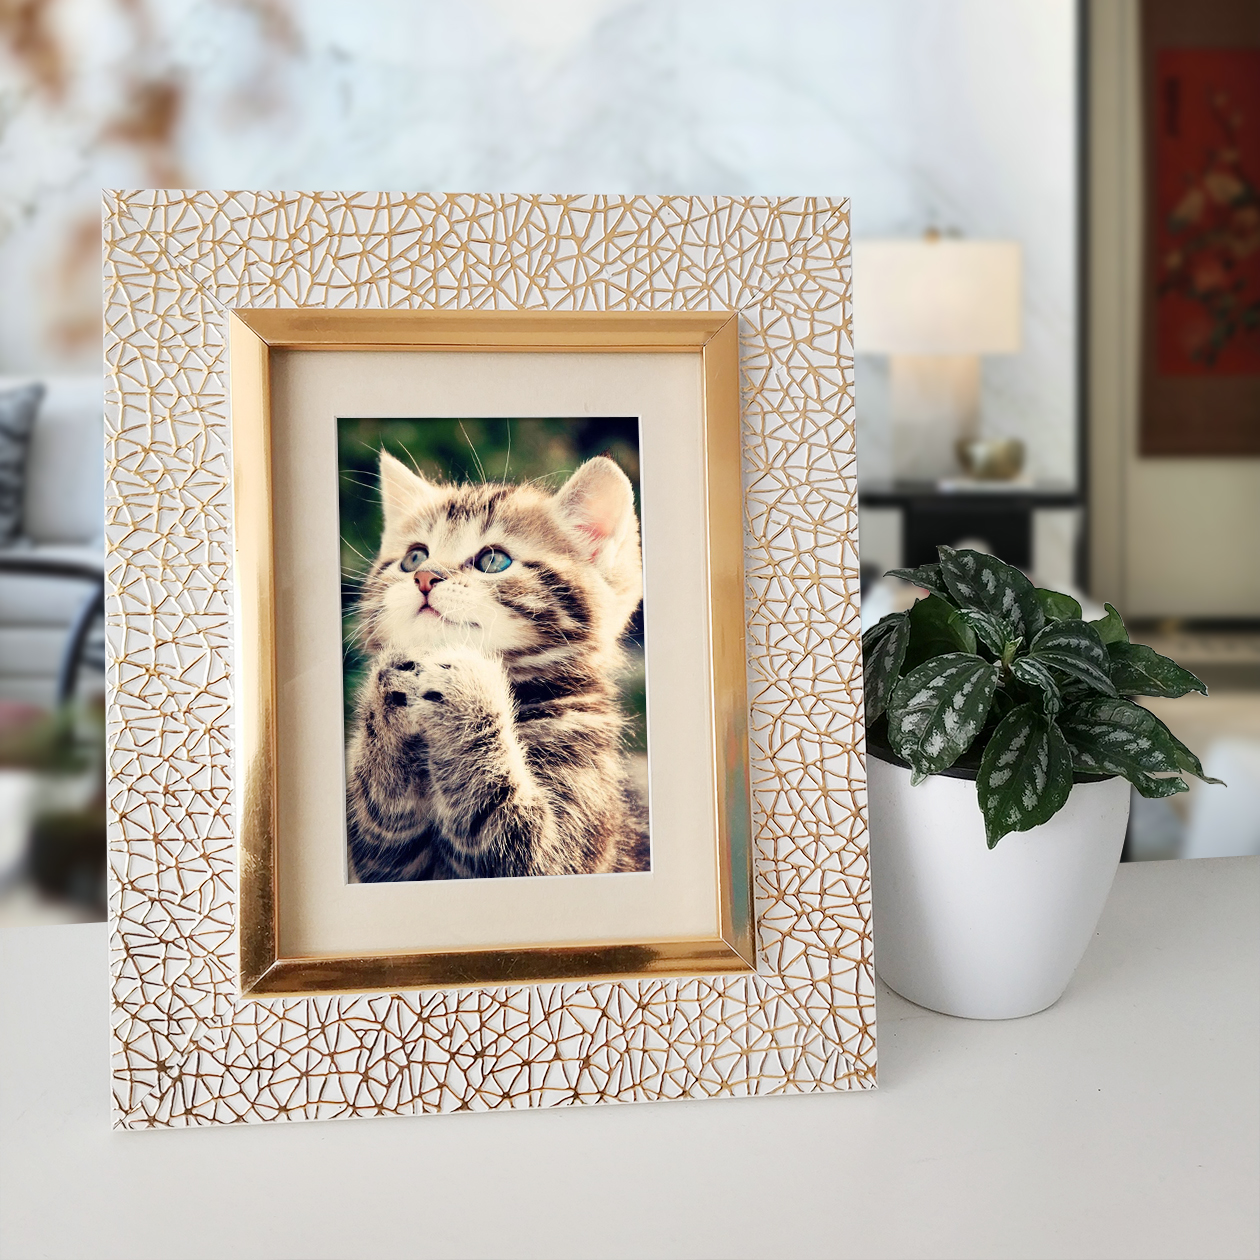 Plastic Ornate Frame, Plastic Ornate Frame Suppliers and ...